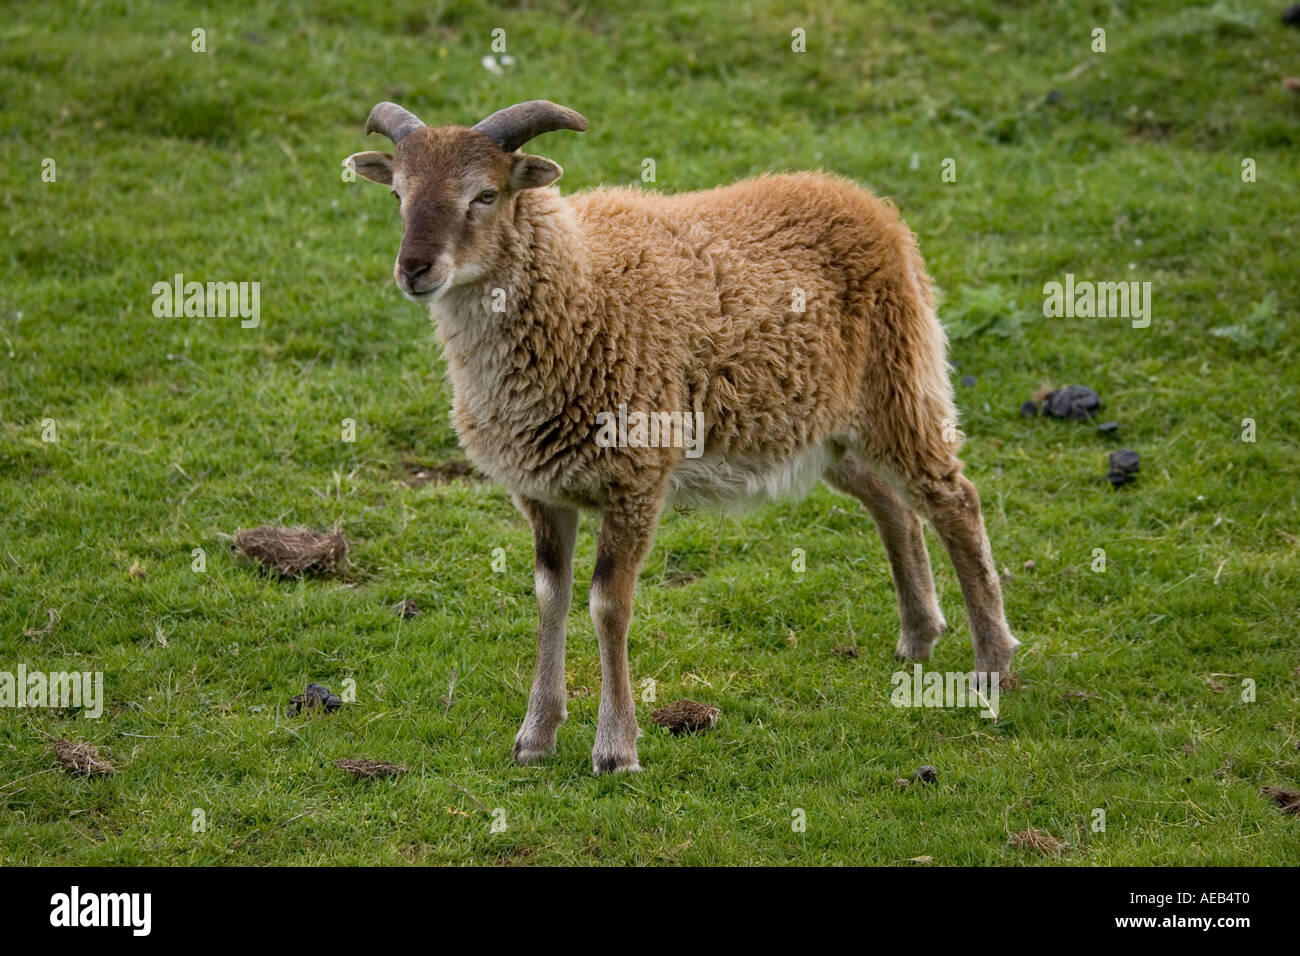 Soay sheep Ovis aries aries soay Highland Wildlife Park Scotland UK Originated from St Kilda in Outer Hebrides - Stock Image